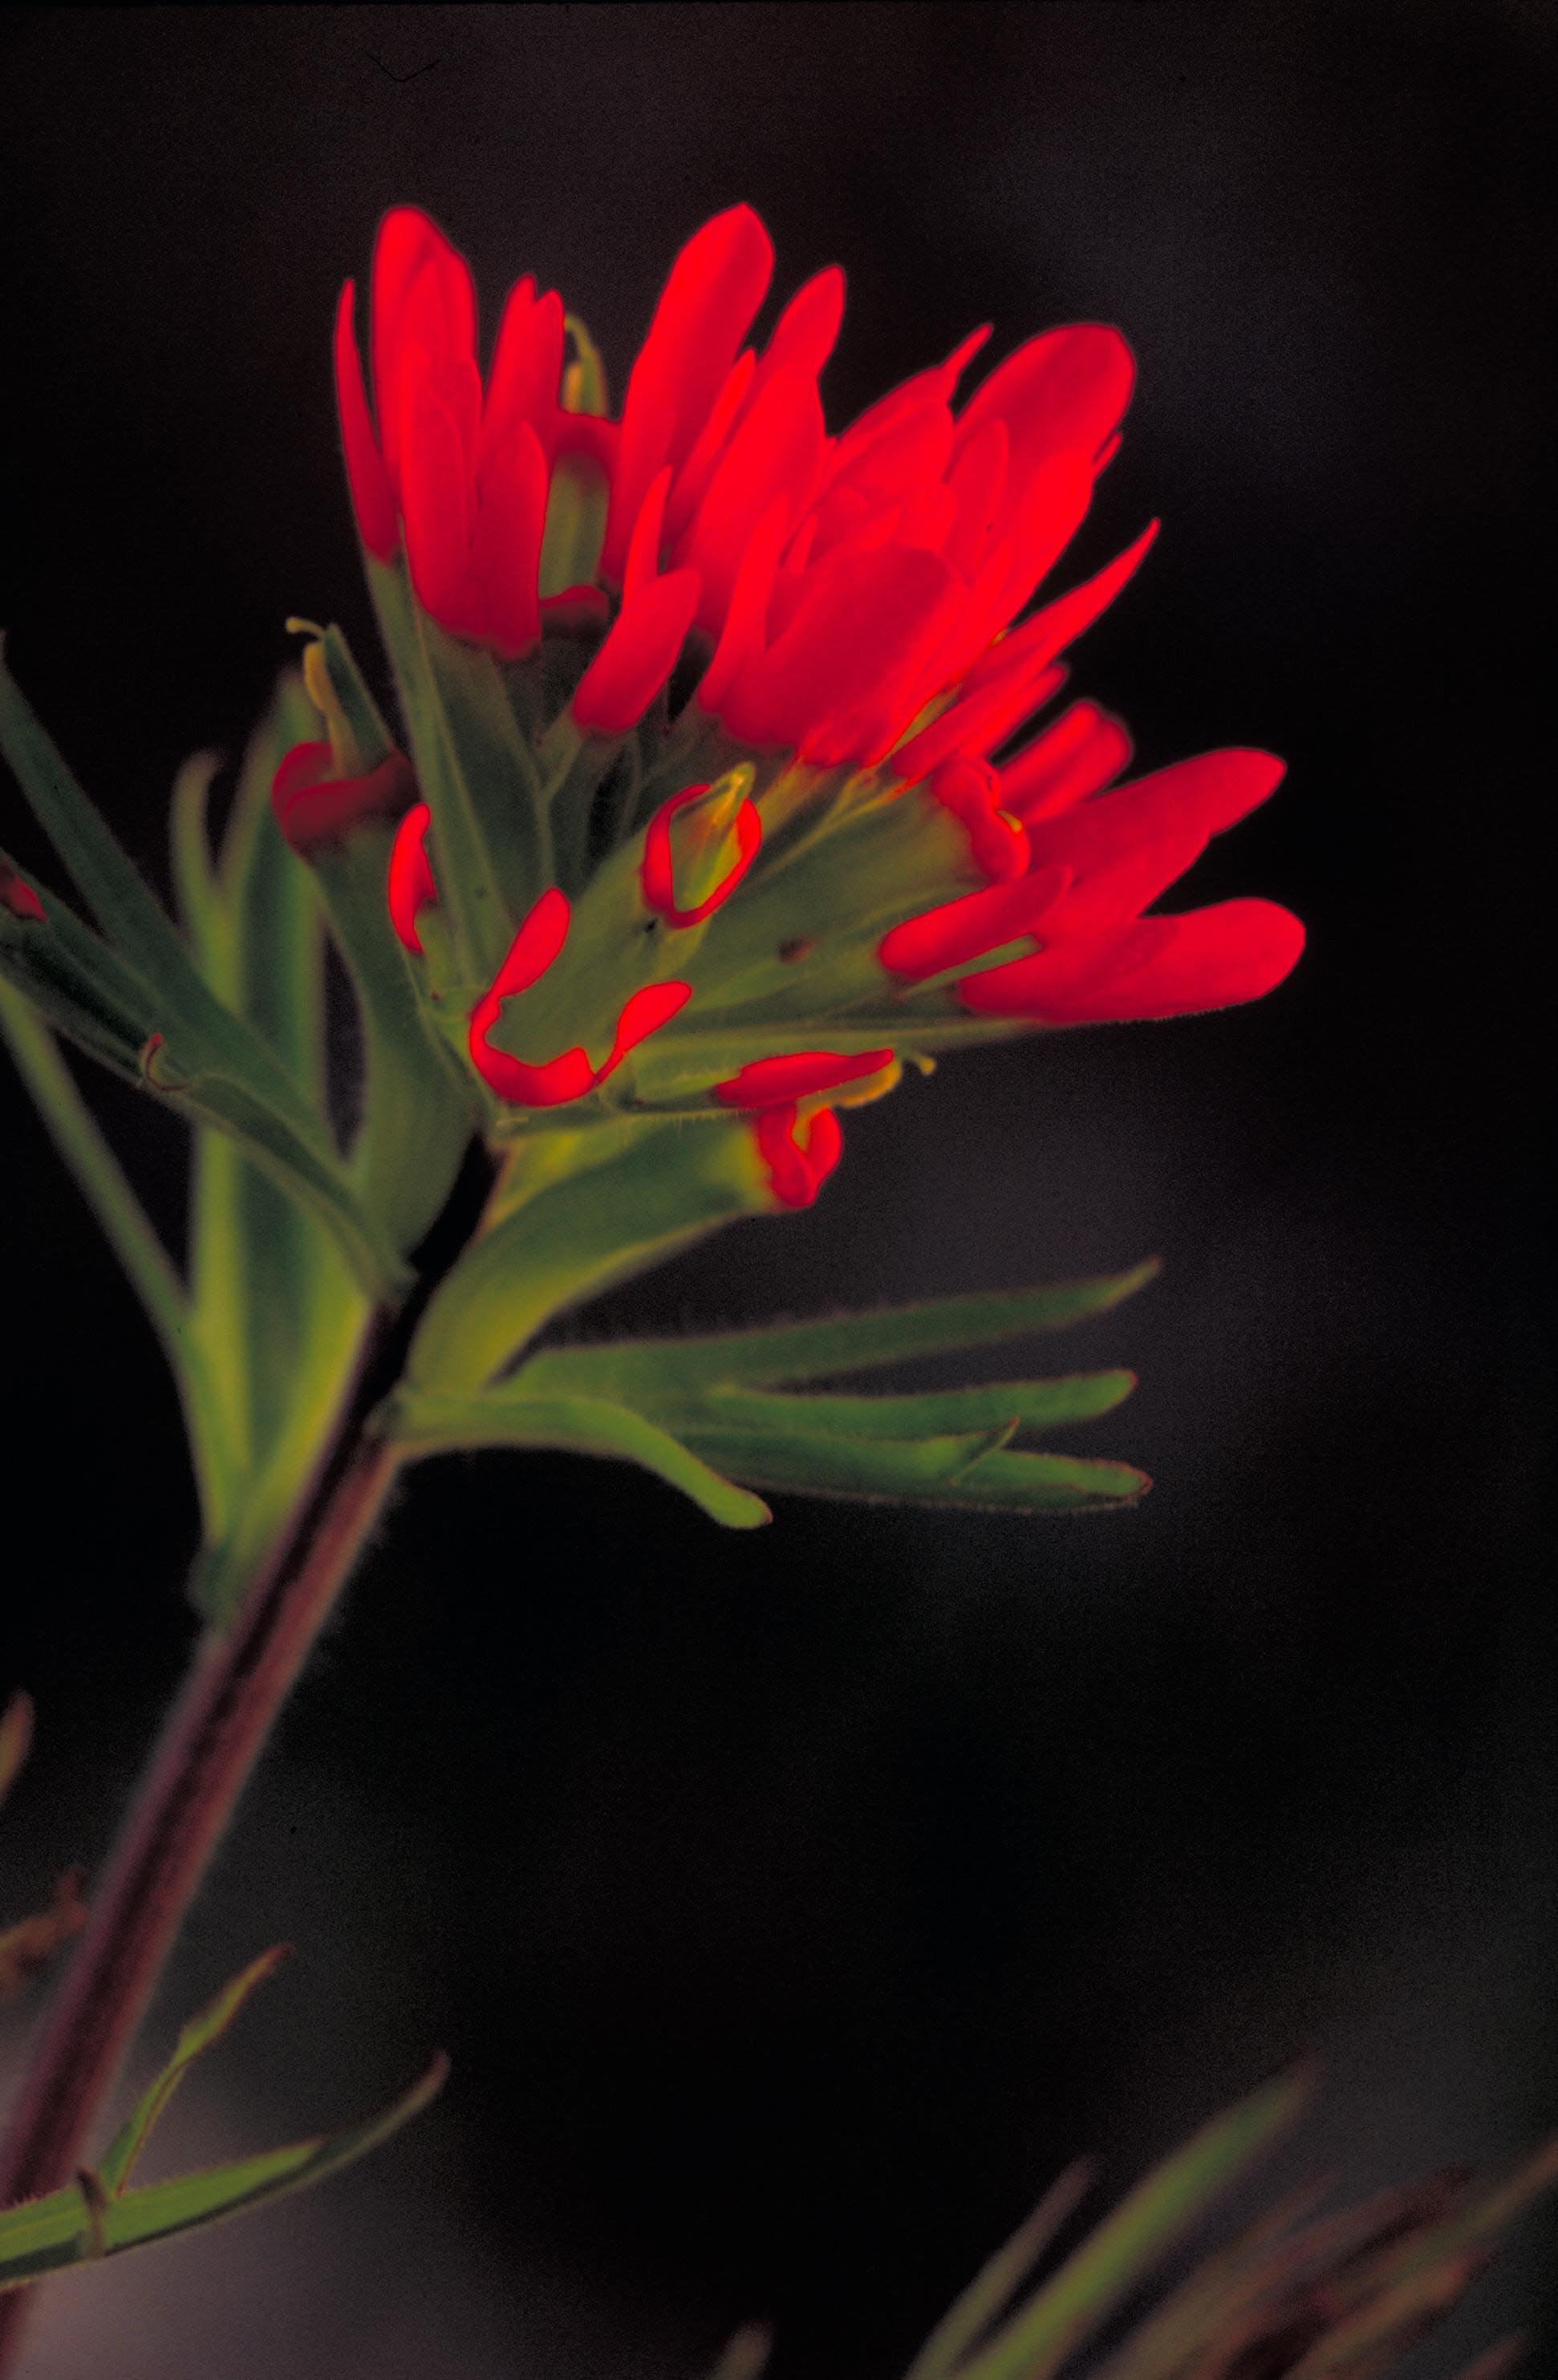 Red Indian Paintbrush Flower